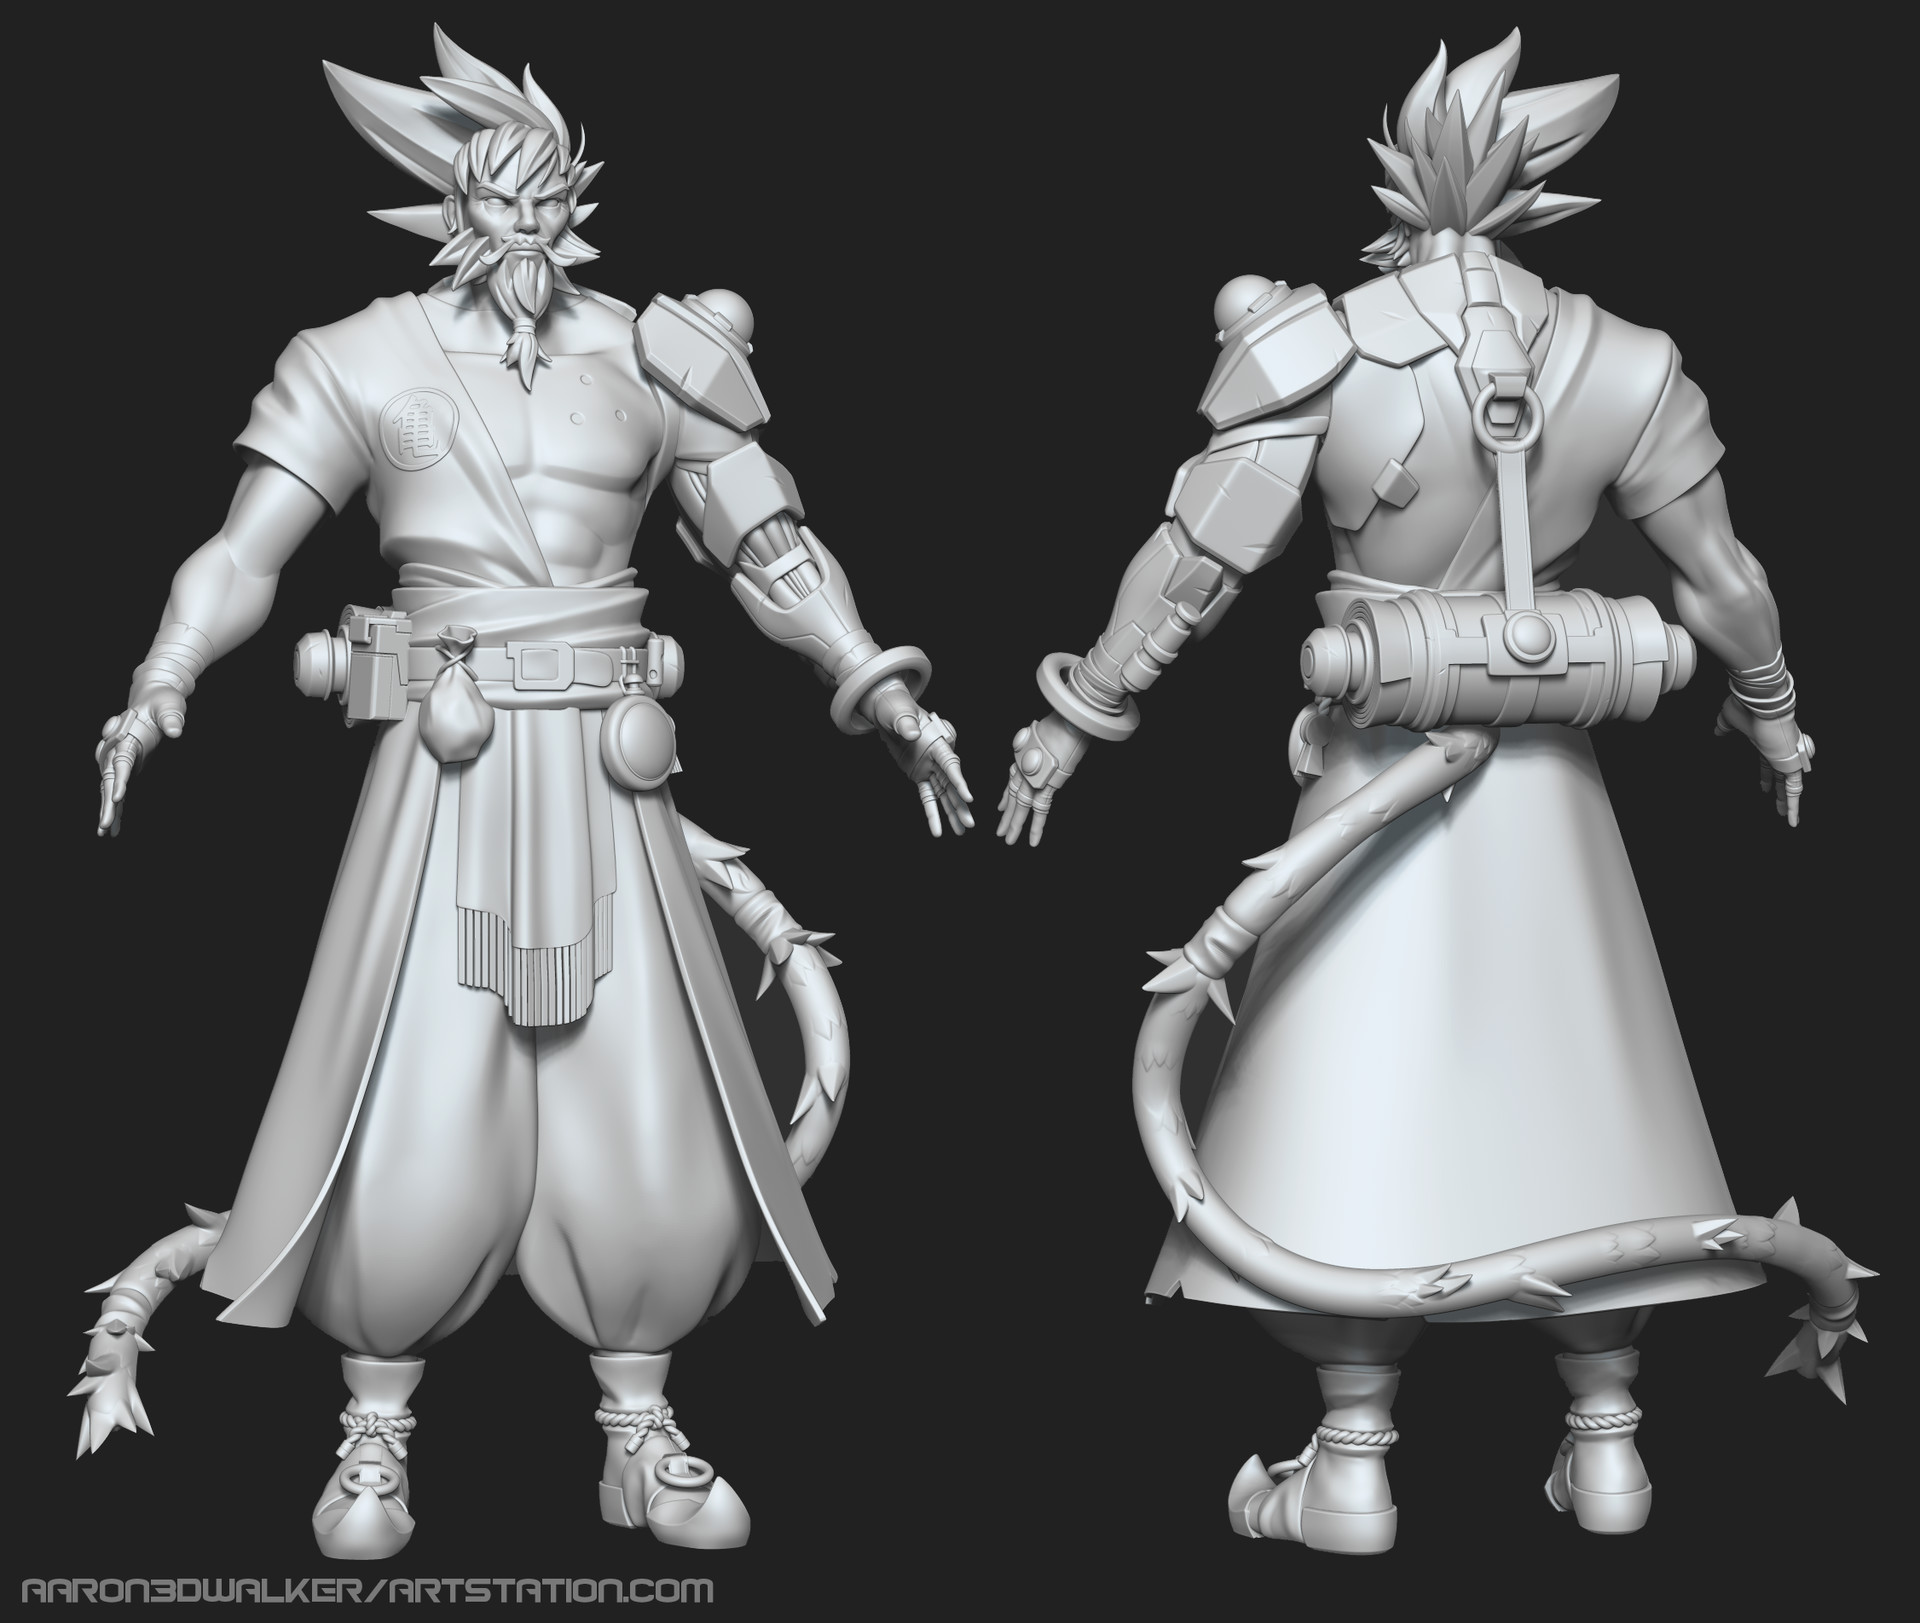 Aaron walker old goku zbrush